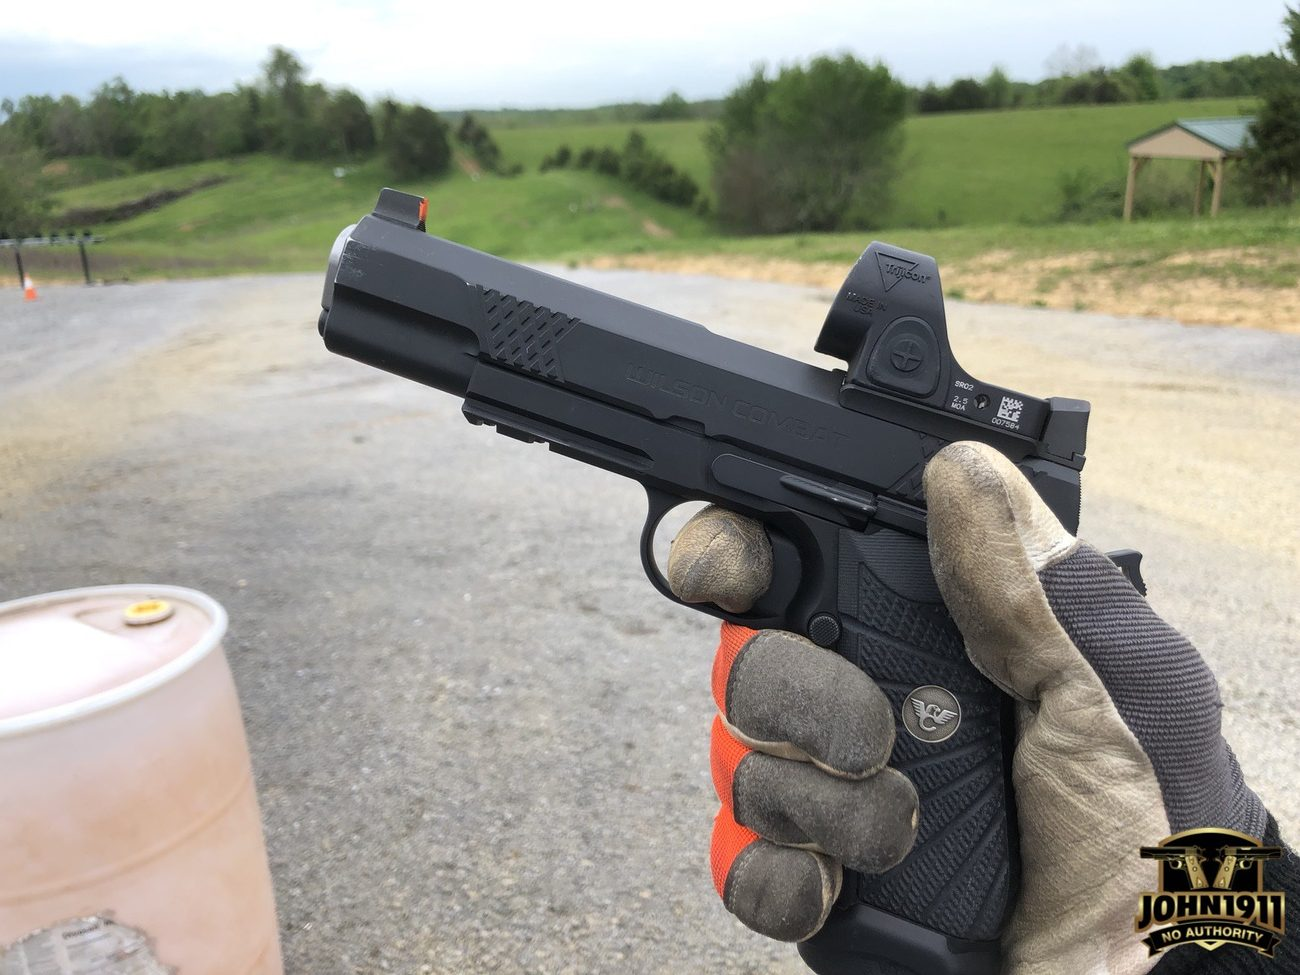 Wilson EDC X9L with gloves.